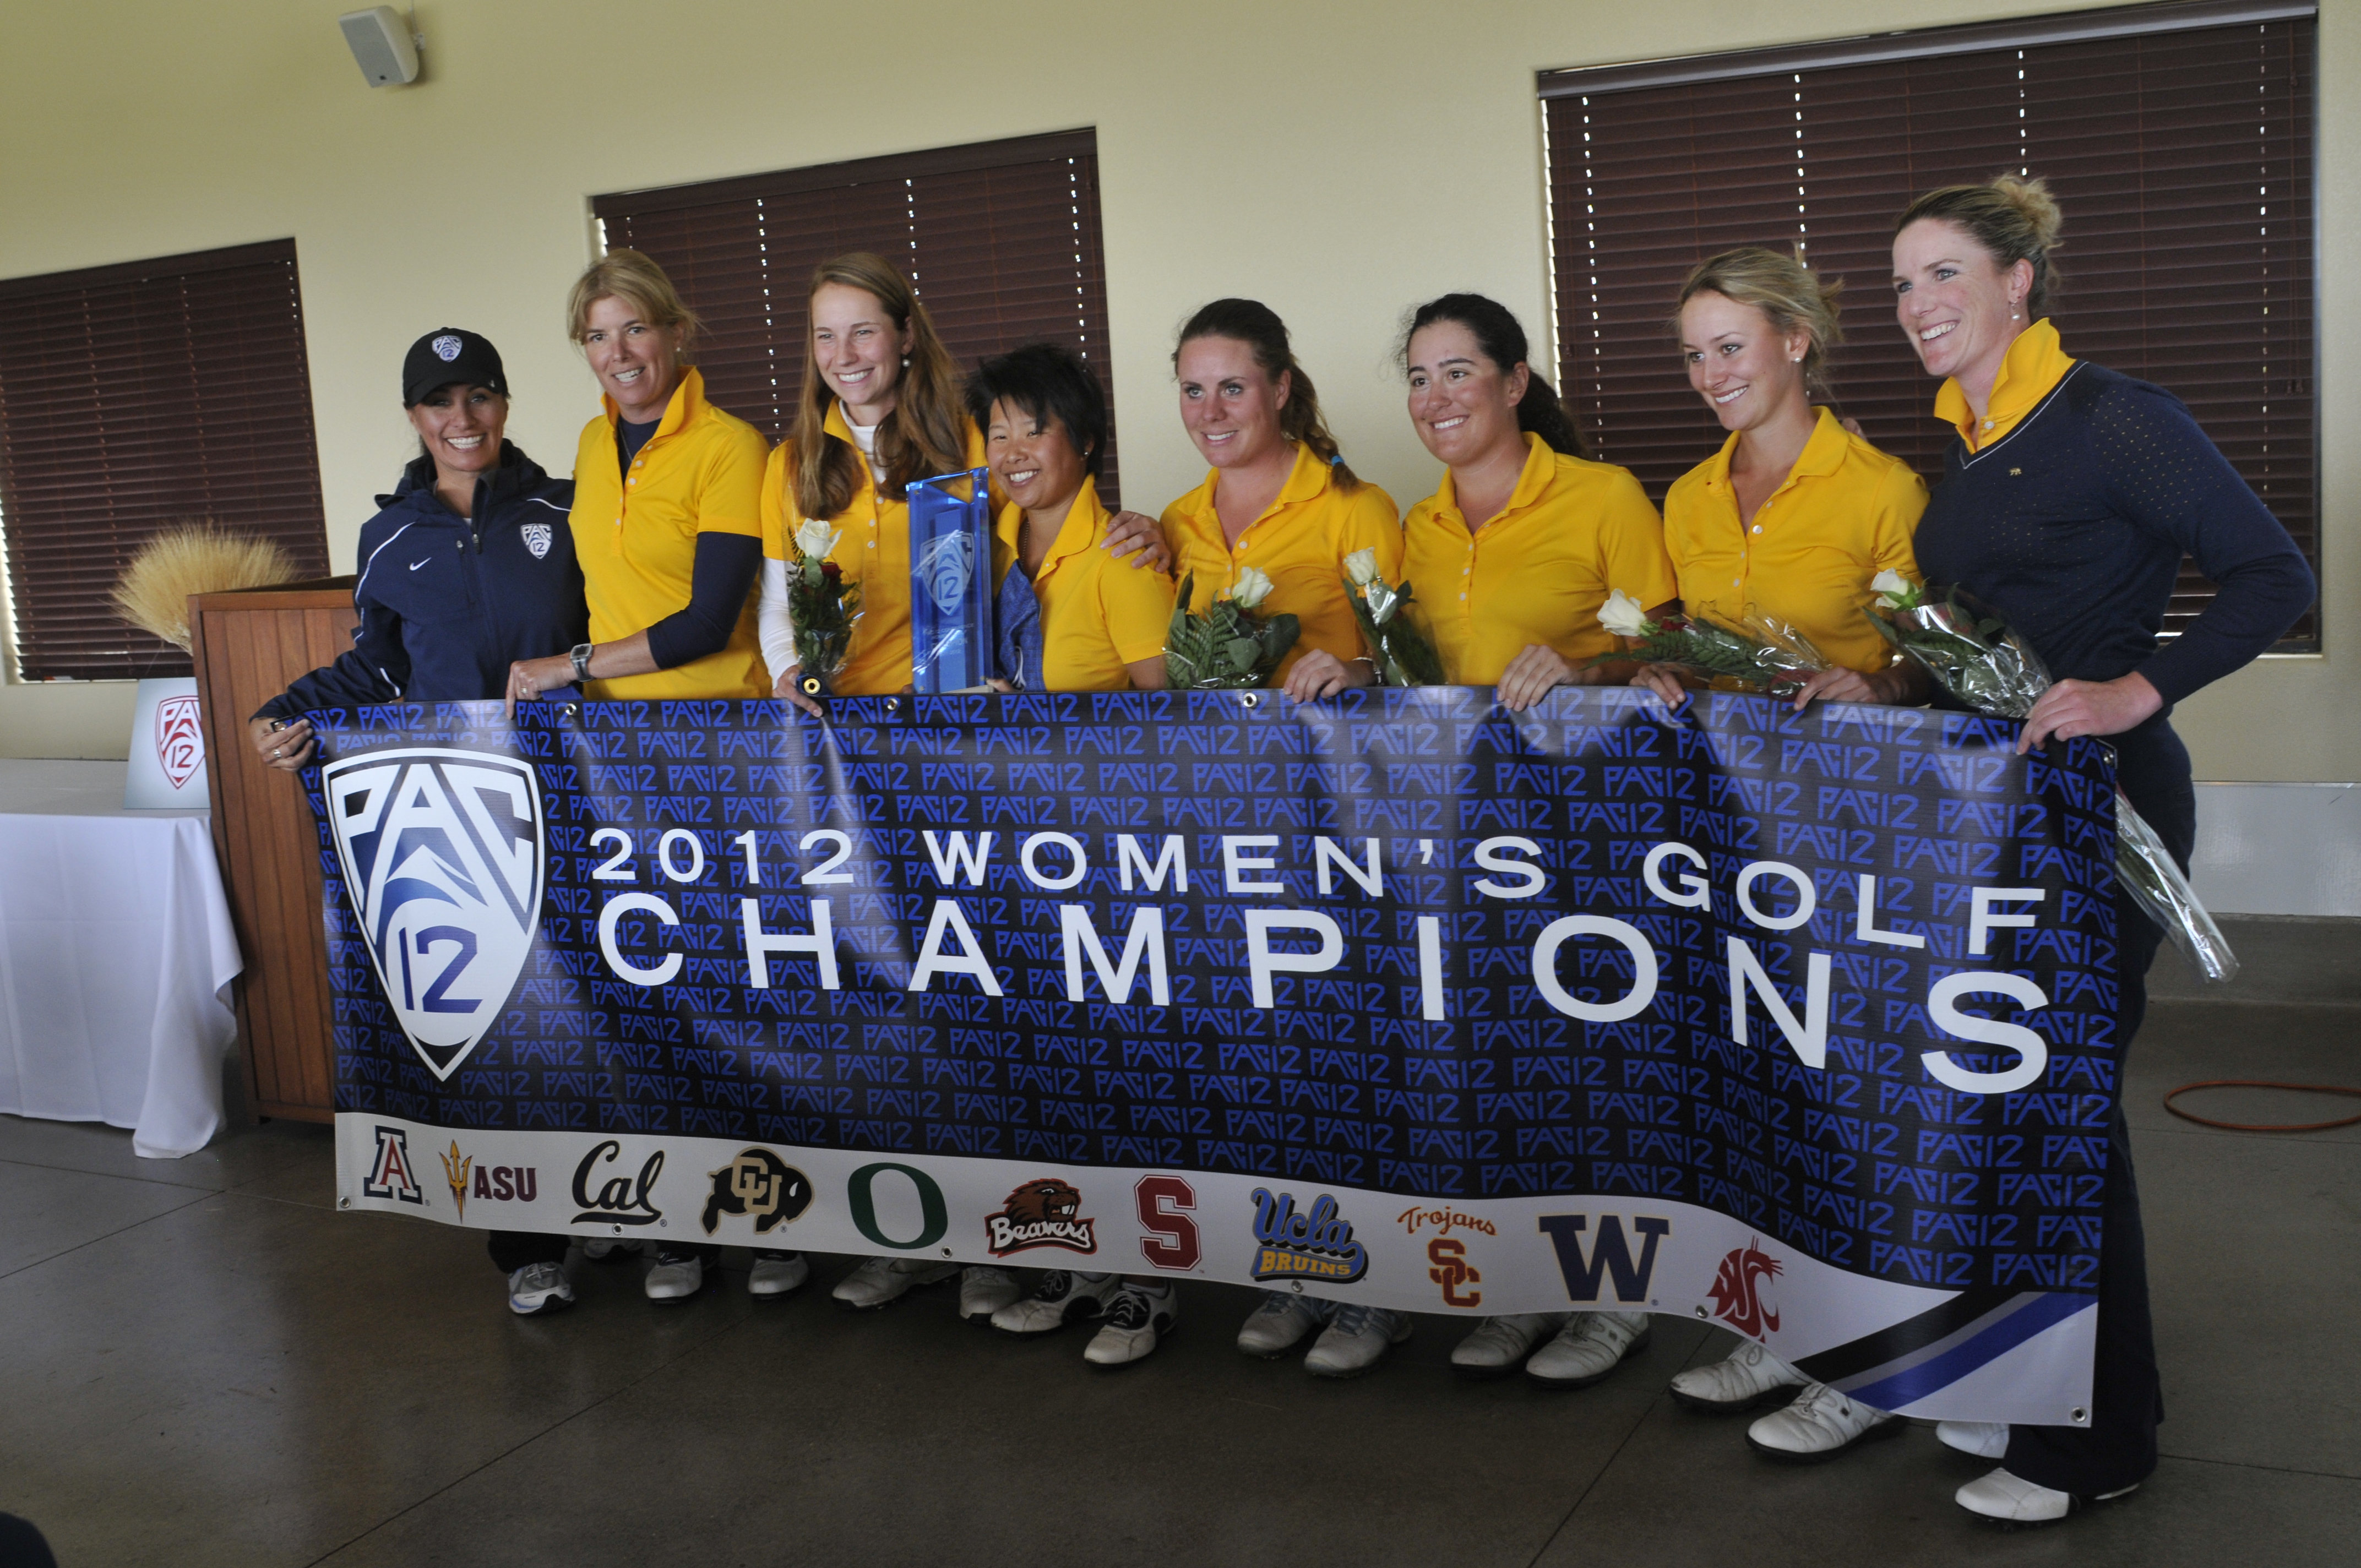 The Cal women's golf team won the Pac-12 Championship on Sunday, the second title in program history. Cal will compete in regionals from May 10-12 with the goal of advancing to NCAAs for the second straight year.